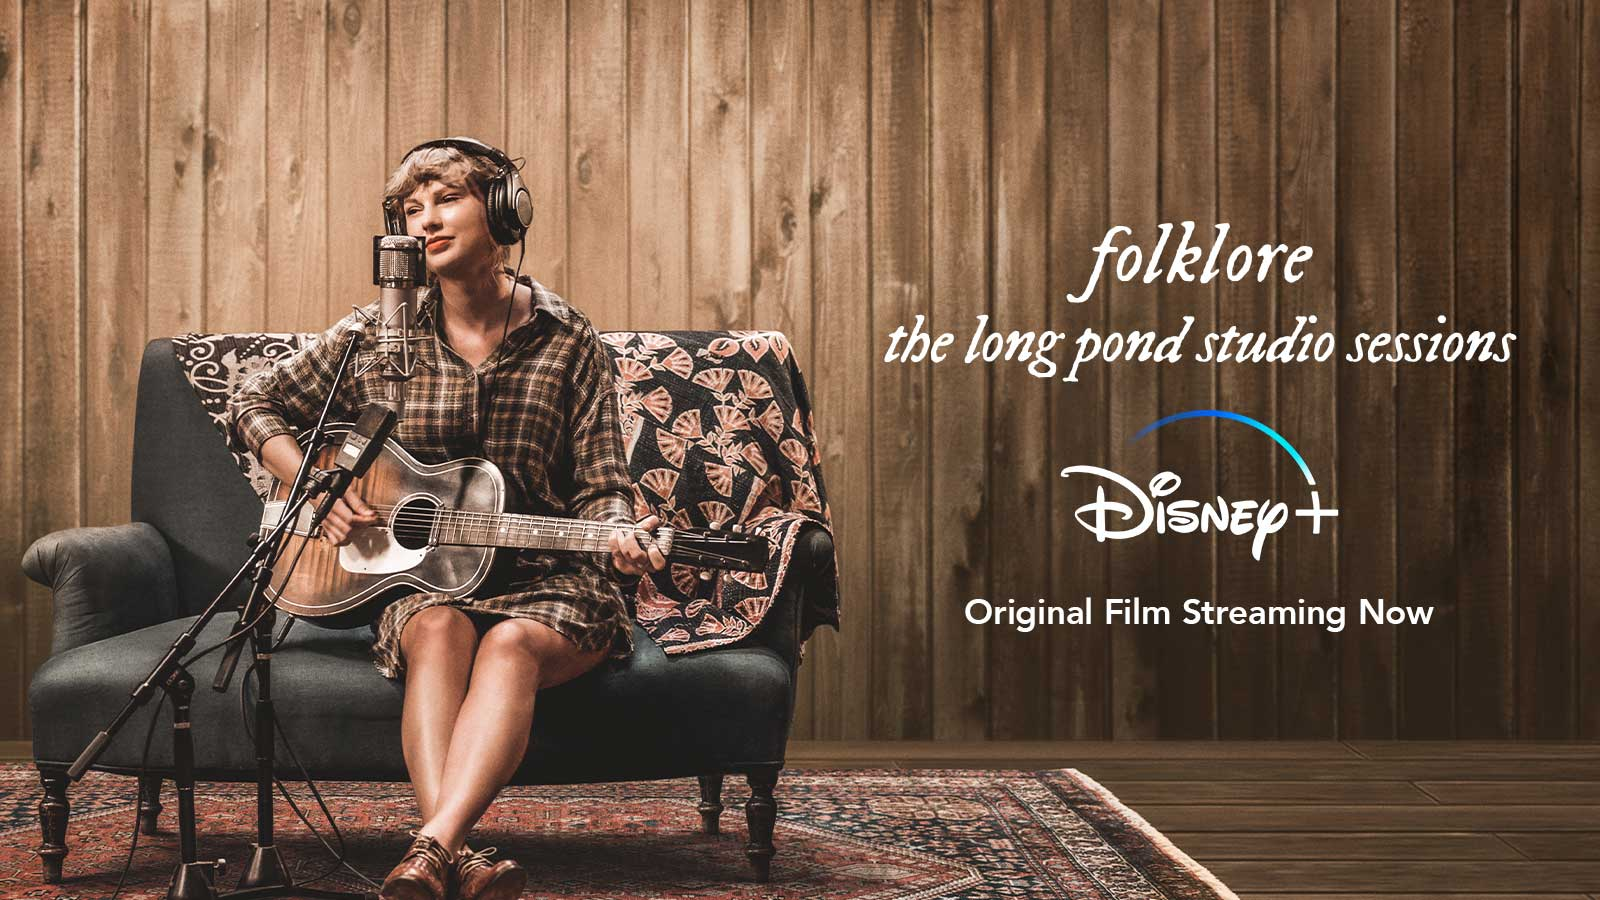 Folklore the long pond studio sessions Disney+ Original Film Streaming Now.